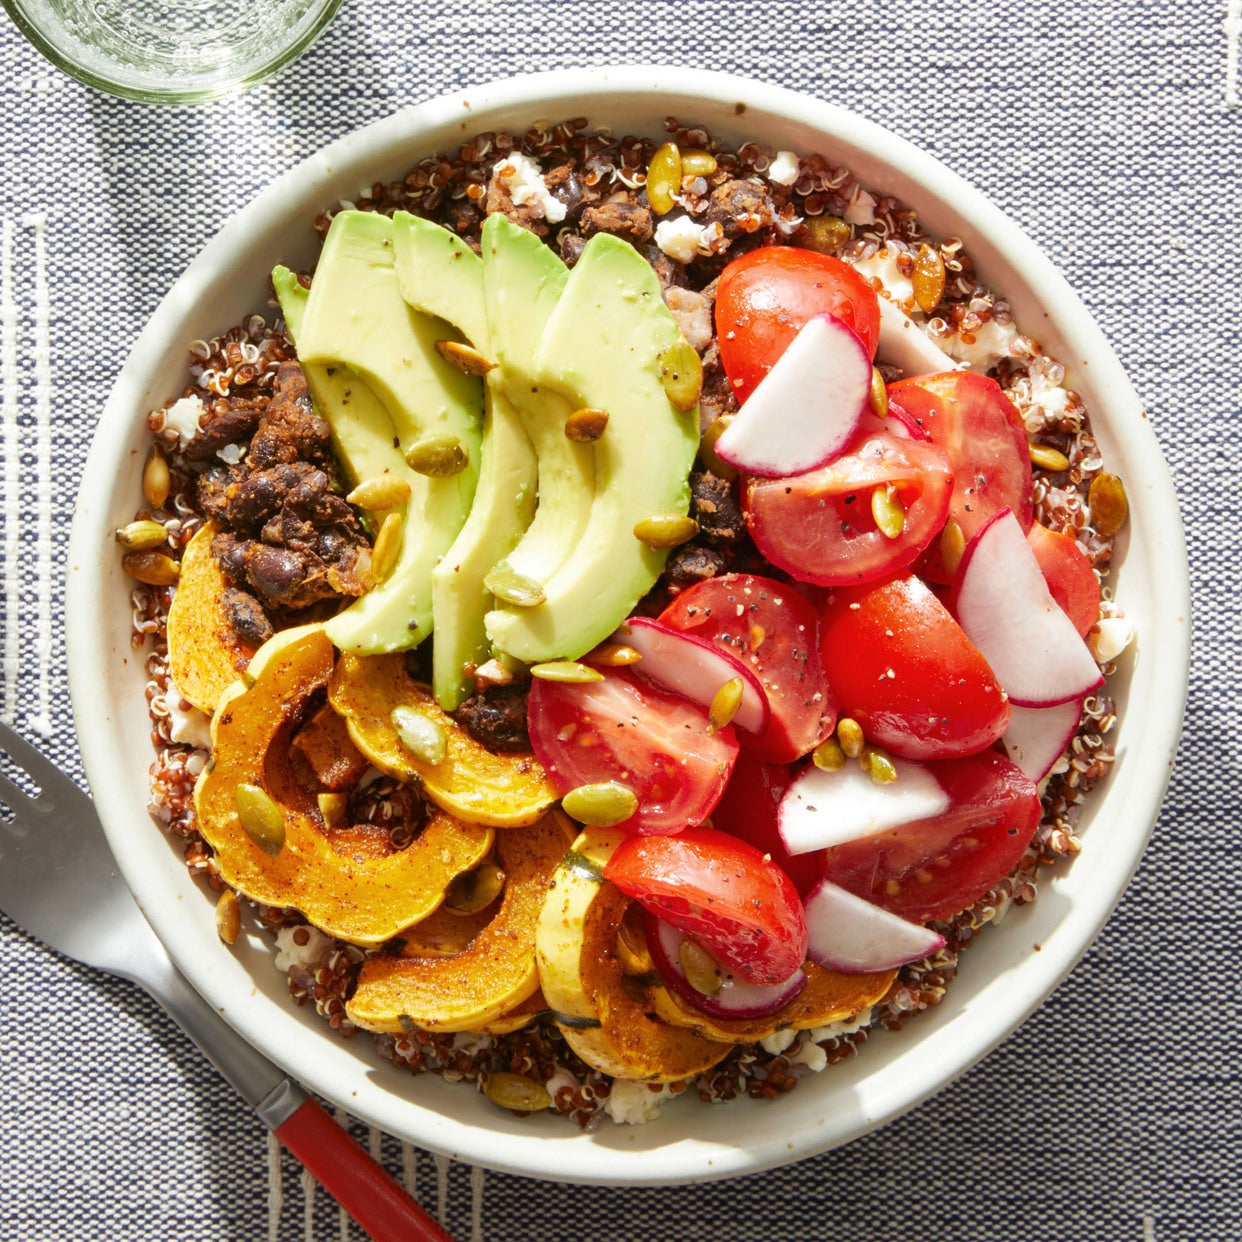 Mexican-Inspired Quinoa Bowl with Avocado, Squash, & Queso Blanco